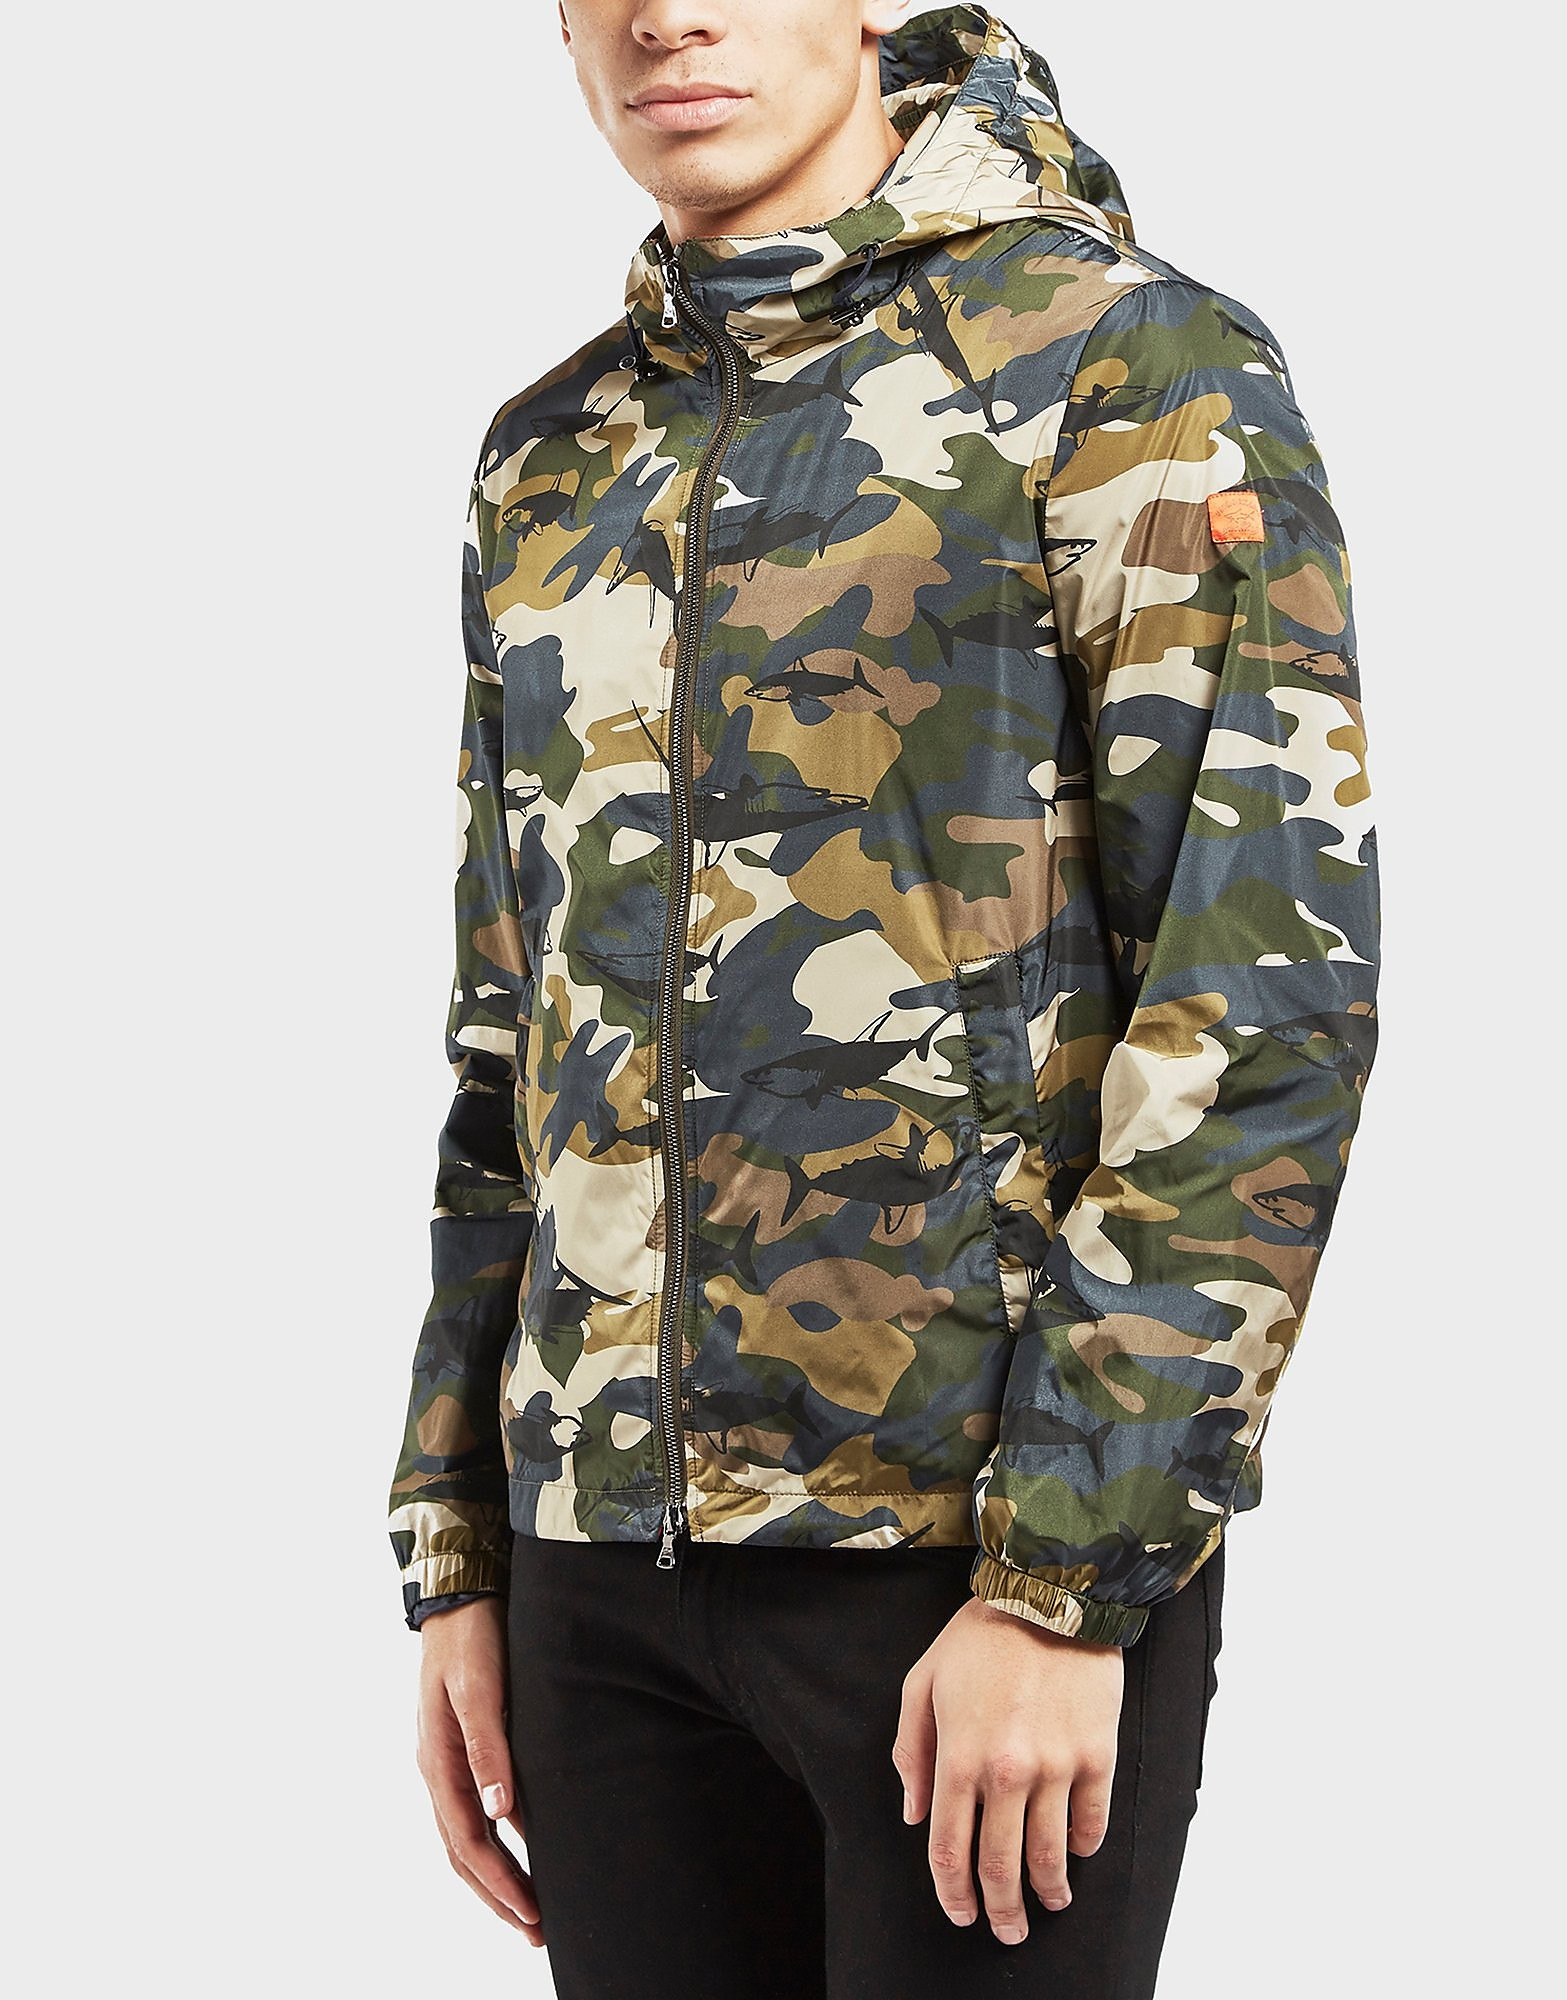 Paul and Shark Shark Camoflauge Lightweight Jacket